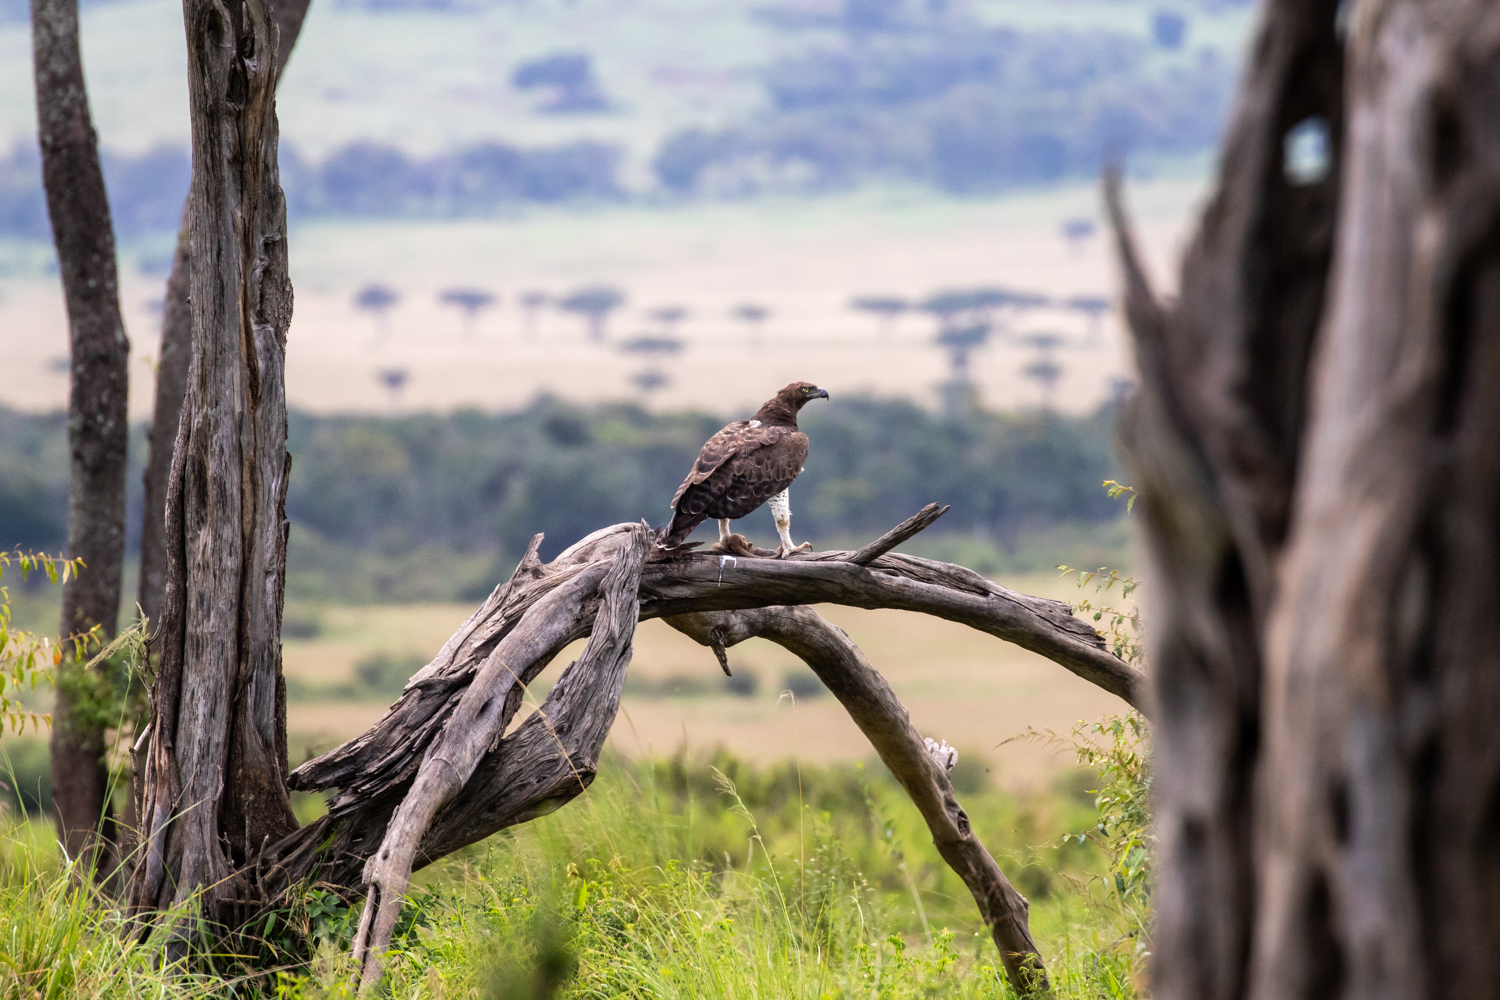 MARTIAL EAGLE WITH MONGOOSE